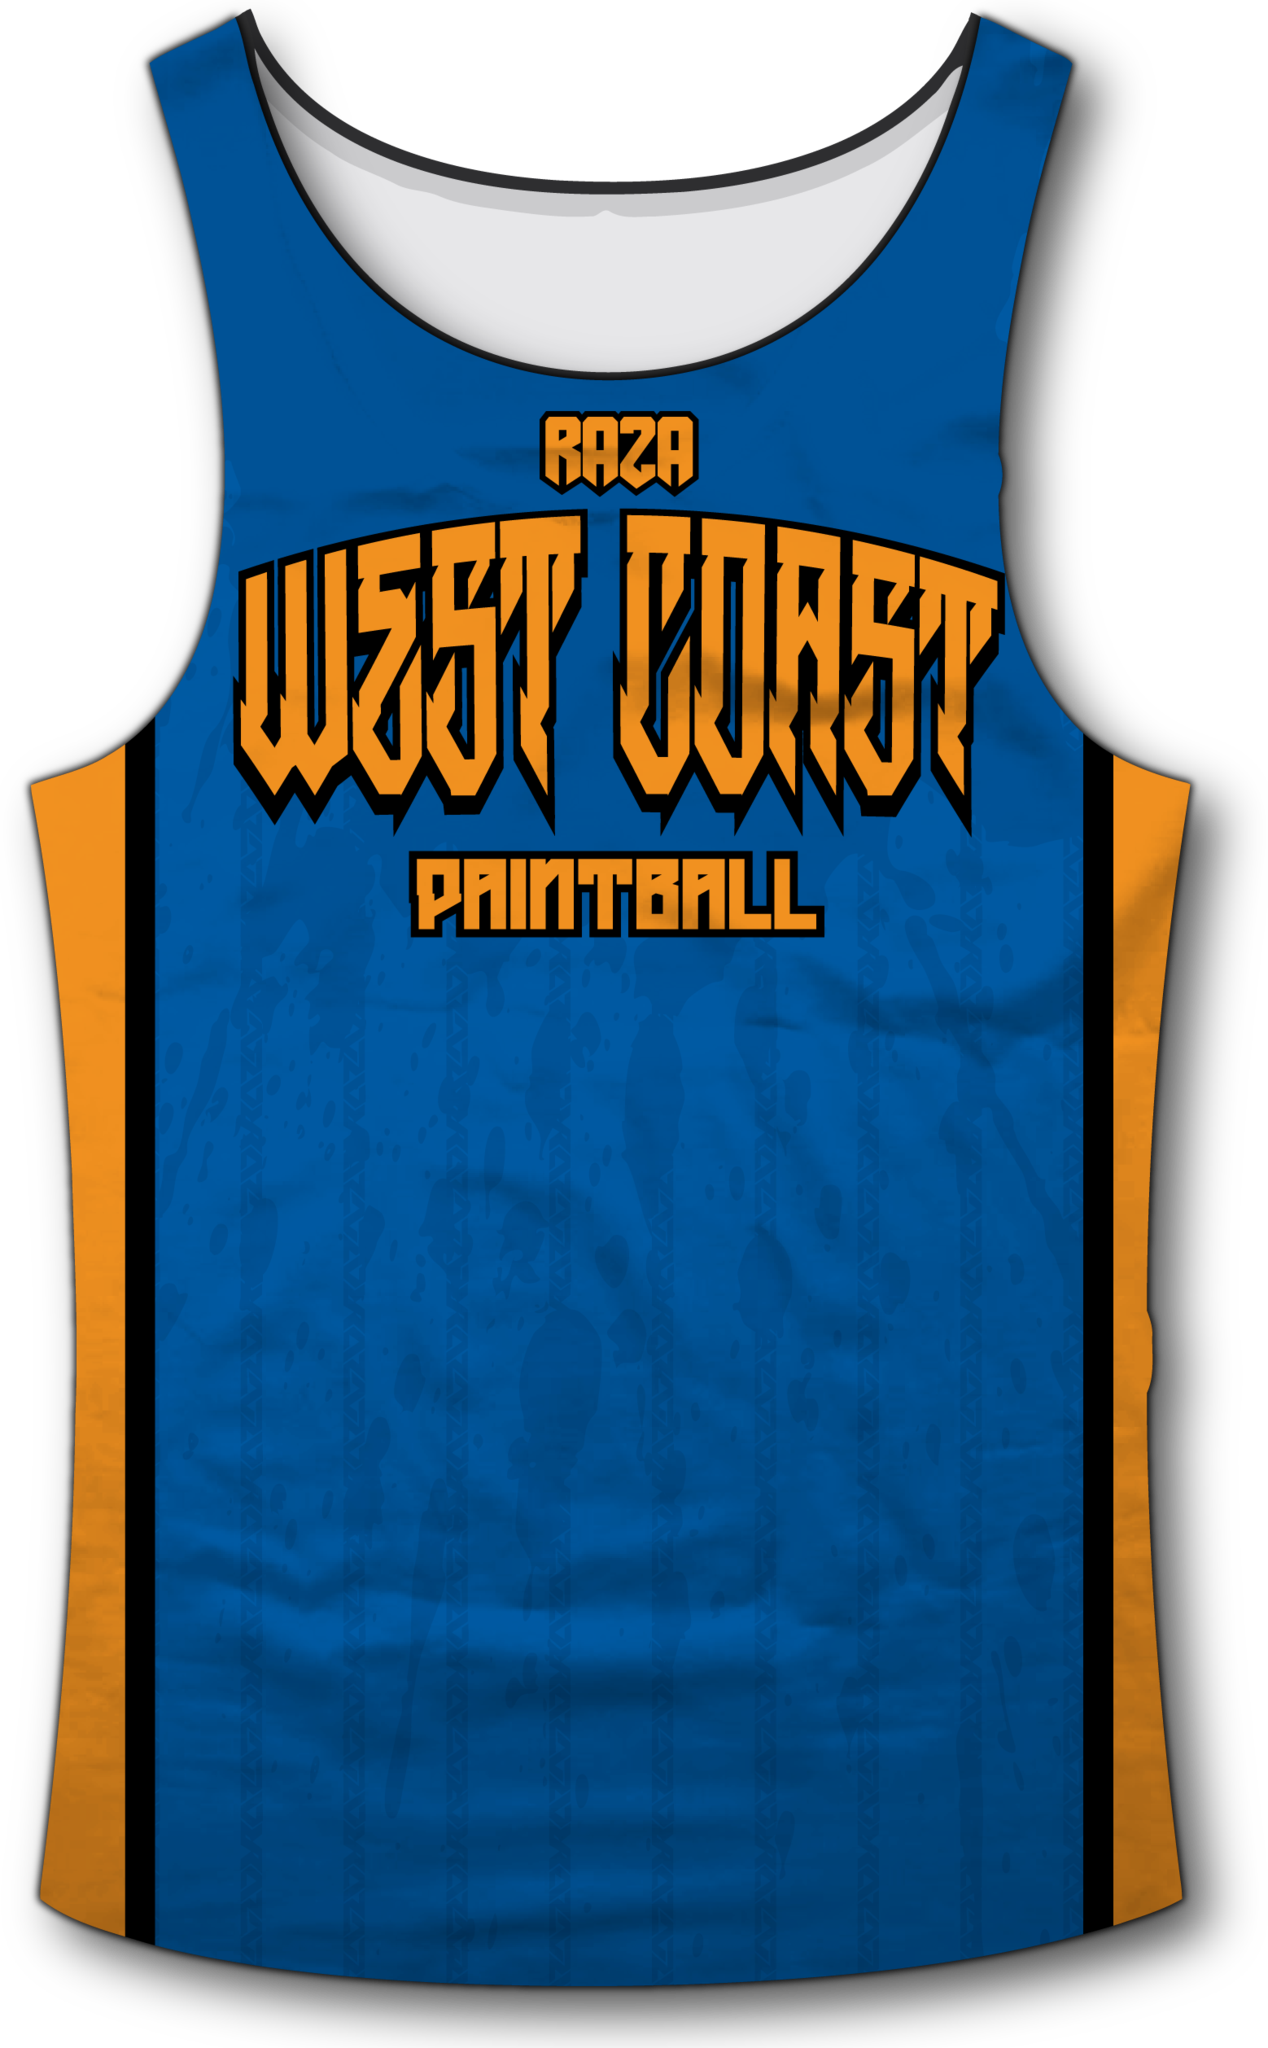 West Coast Paintball Tank Top